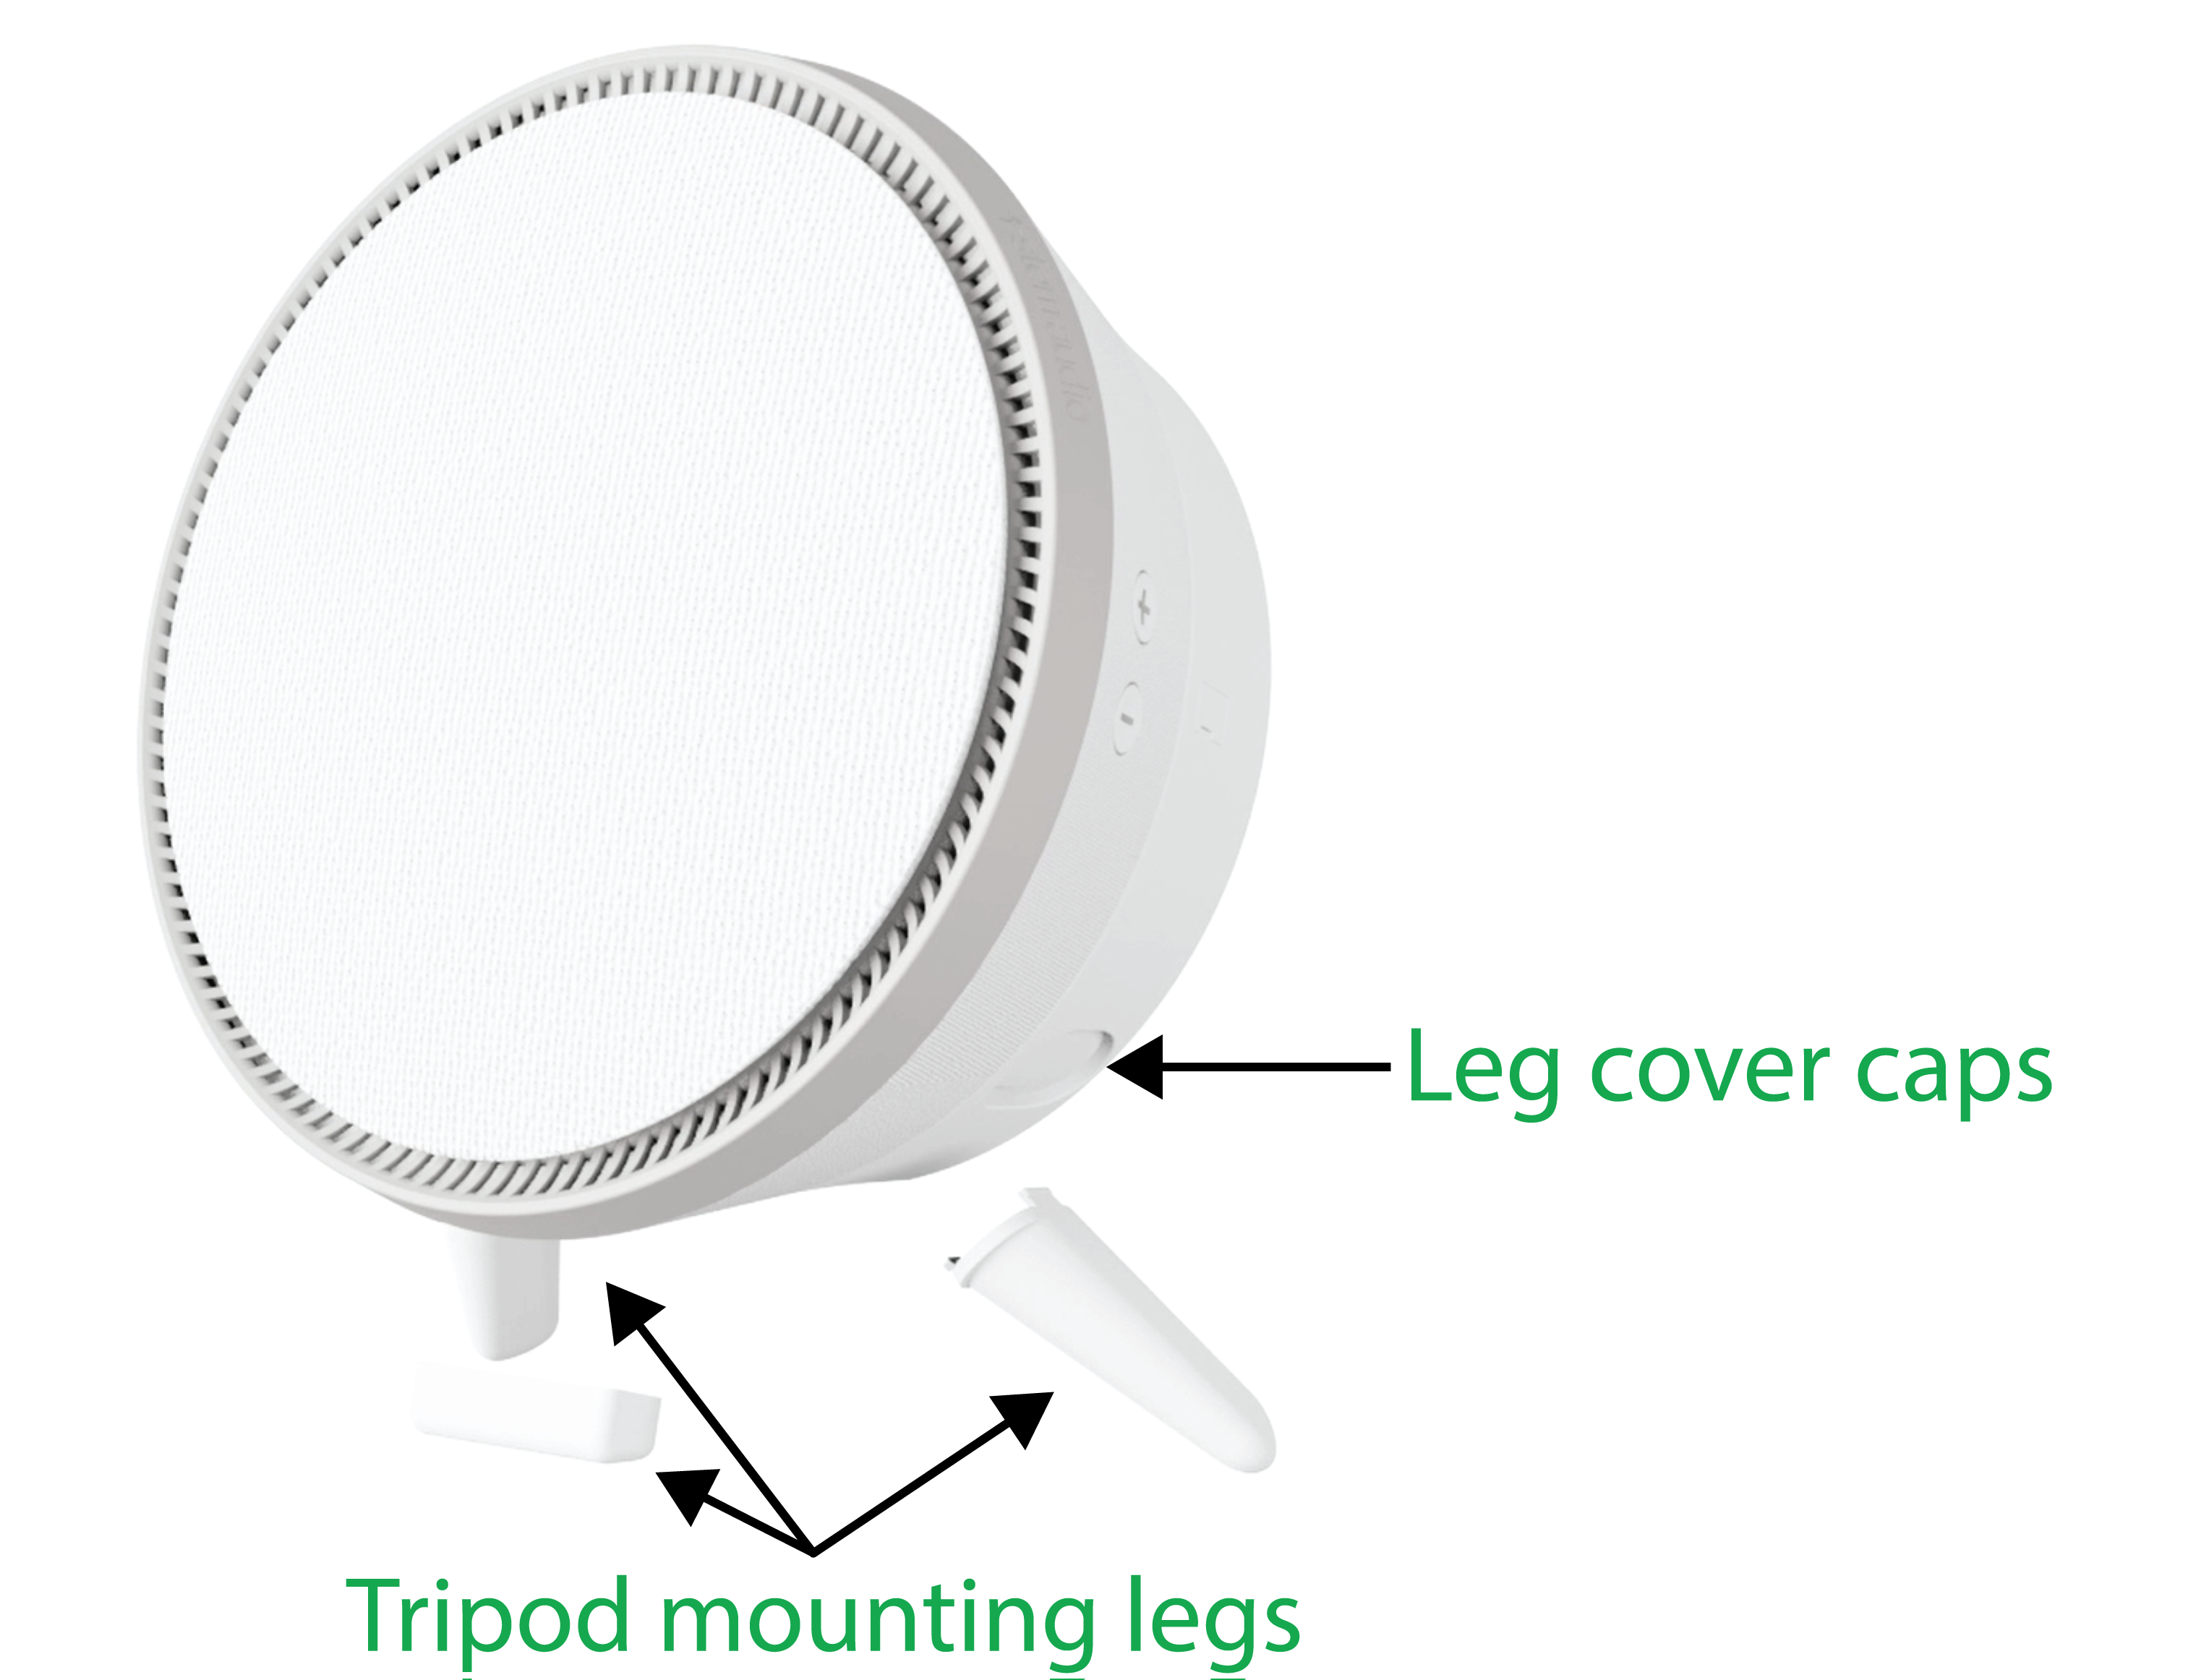 A picture of the Stem Speaker, showing leg cover caps and tripod mounting legs.